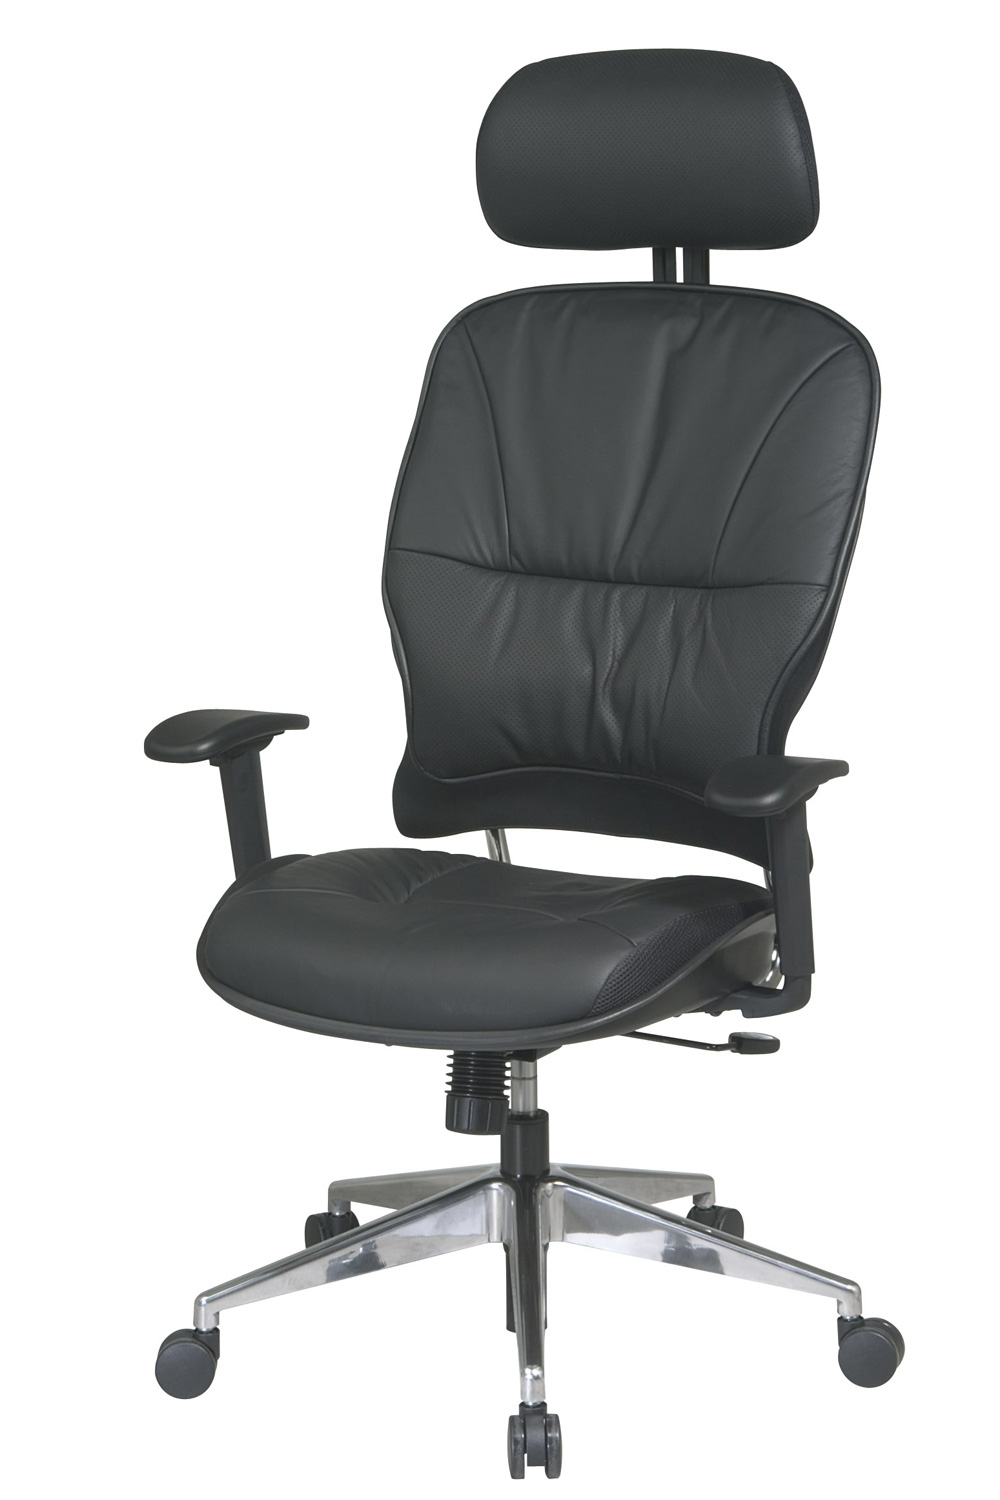 32 44P918Phl Office Star – Executive Leather Office Chair With With Well Known Executive Office Chairs With Headrest (View 13 of 20)